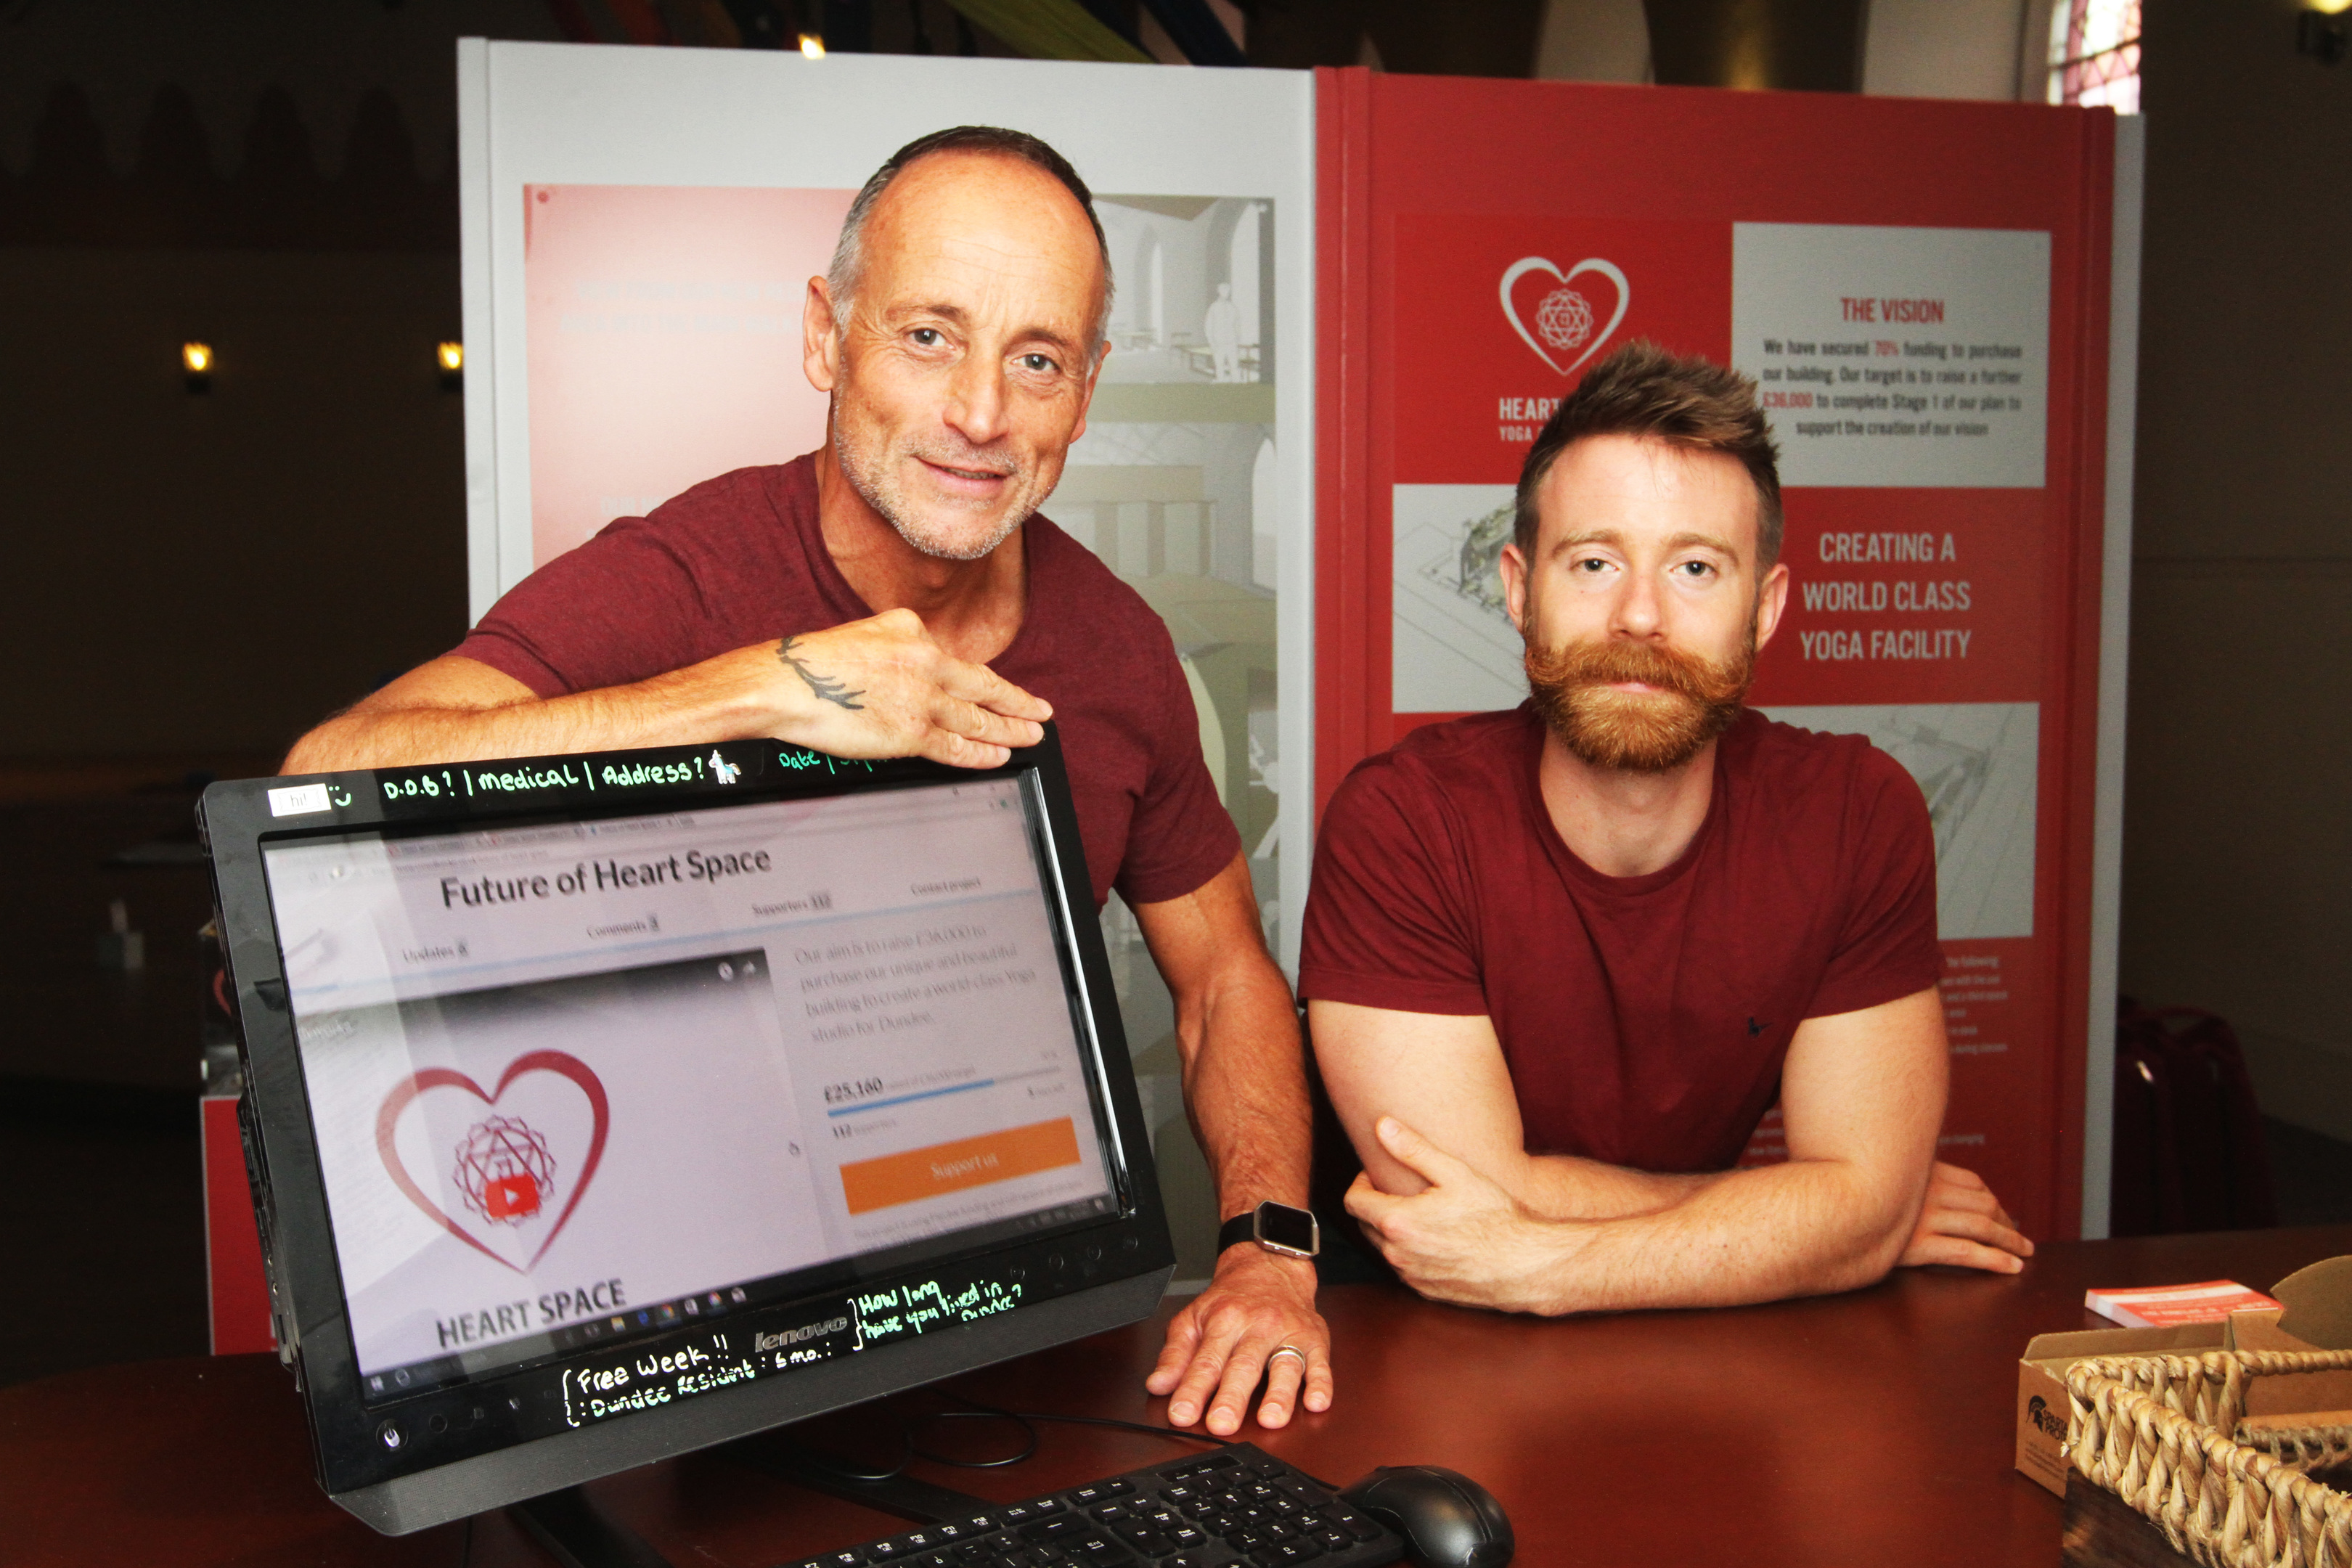 Ian Alexander and Finlay Wilson who are behind the fundraising campaign